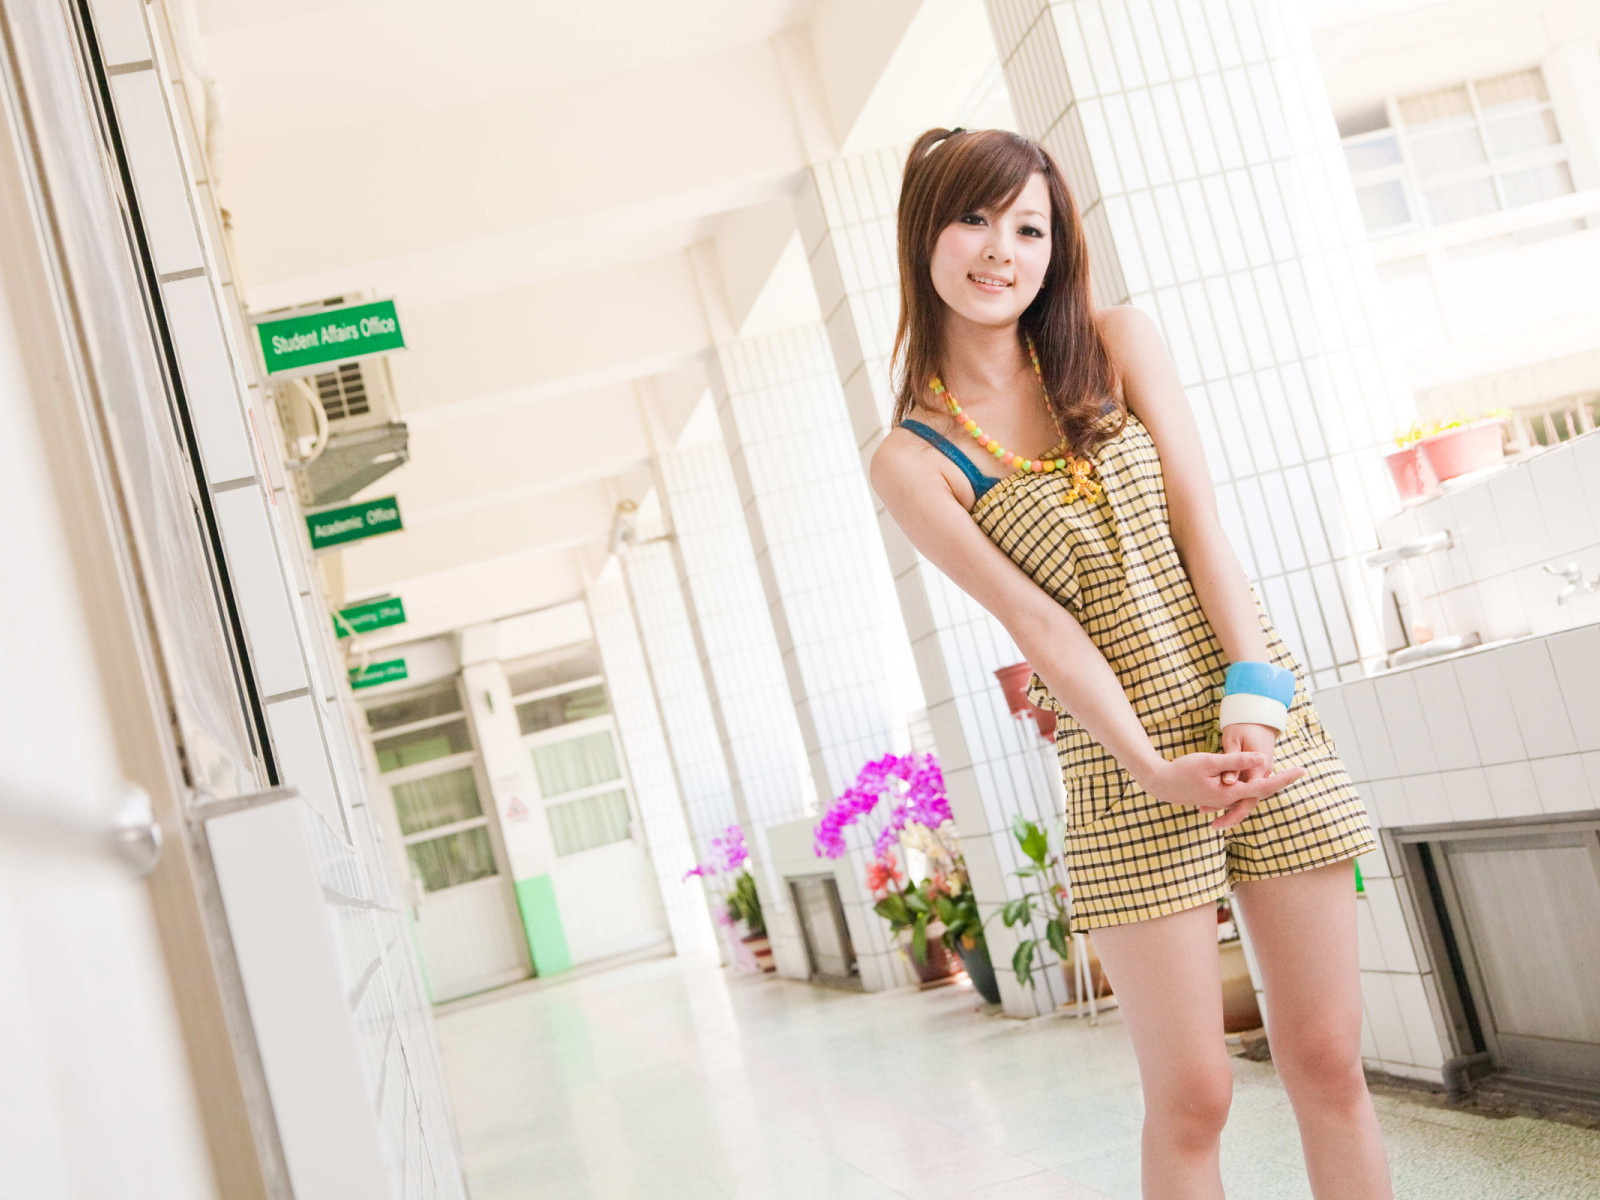 And Beautiful Asian Girls Wallpapers Full HD Free Download